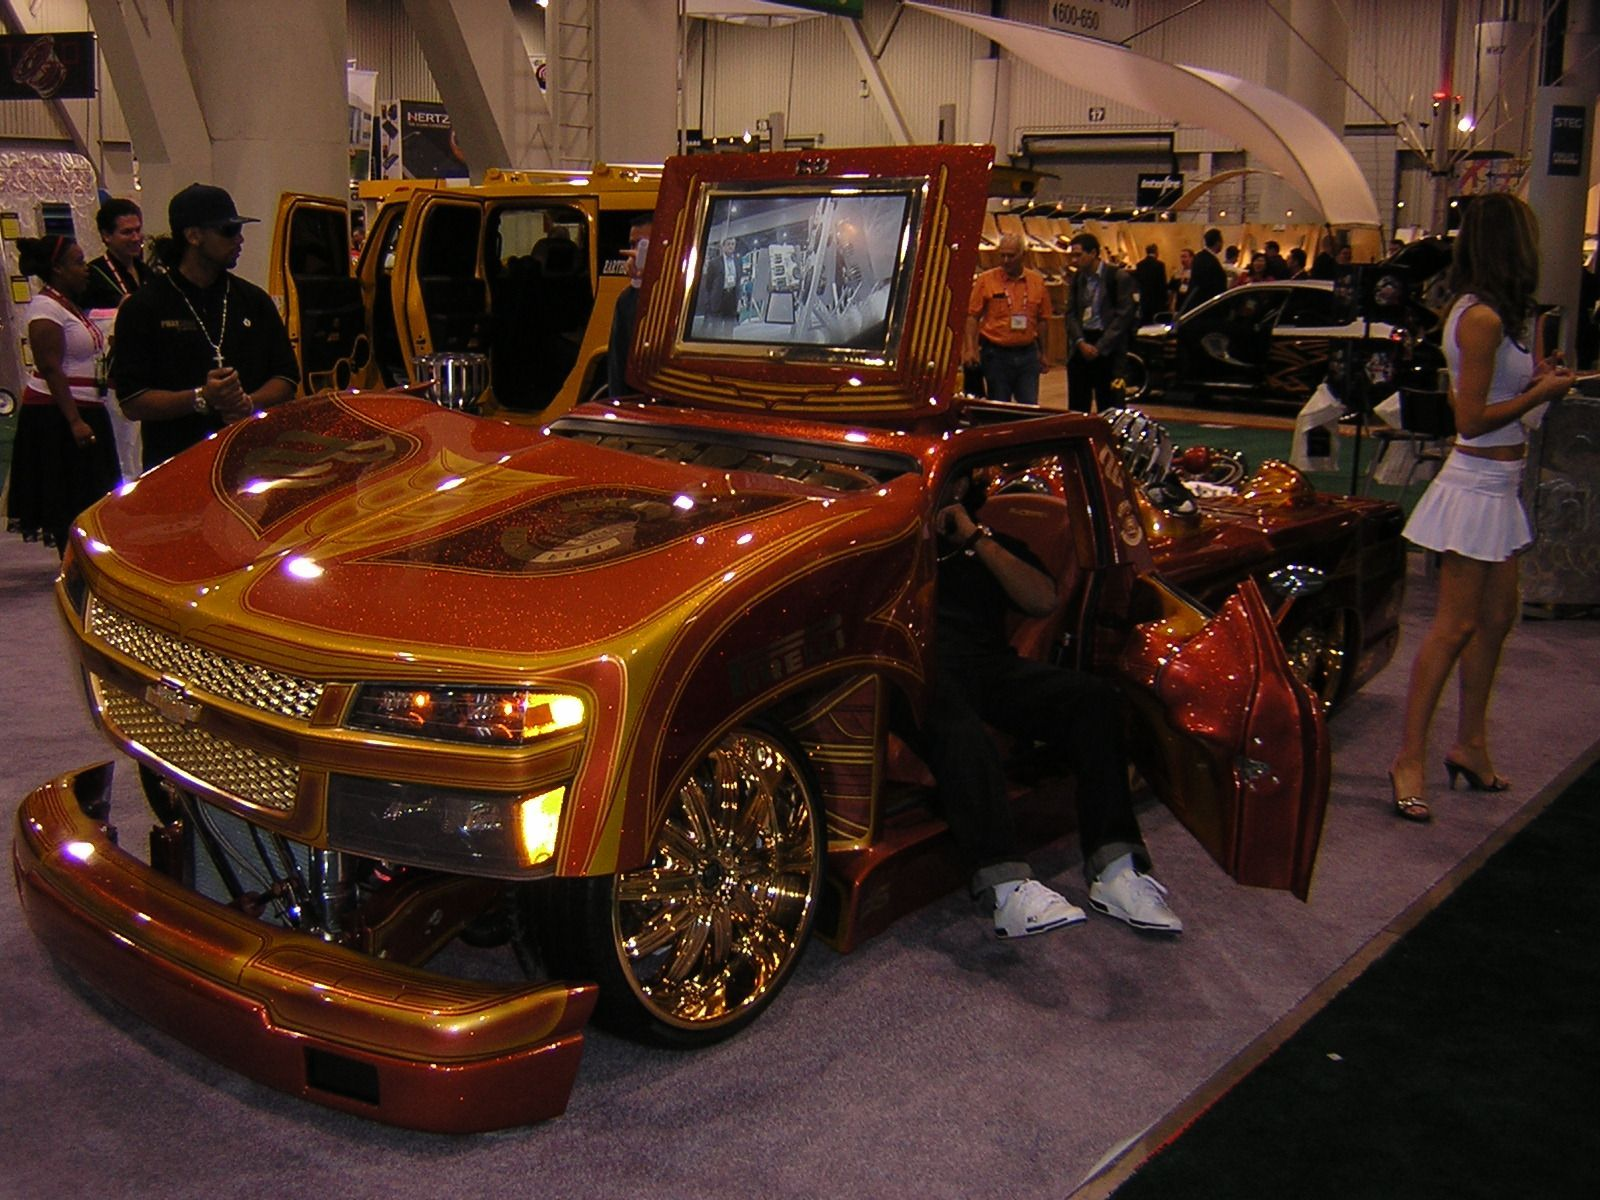 Pimped Cars | Pimped Up Cars | Stuff to Buy | Pinterest | Cars ...